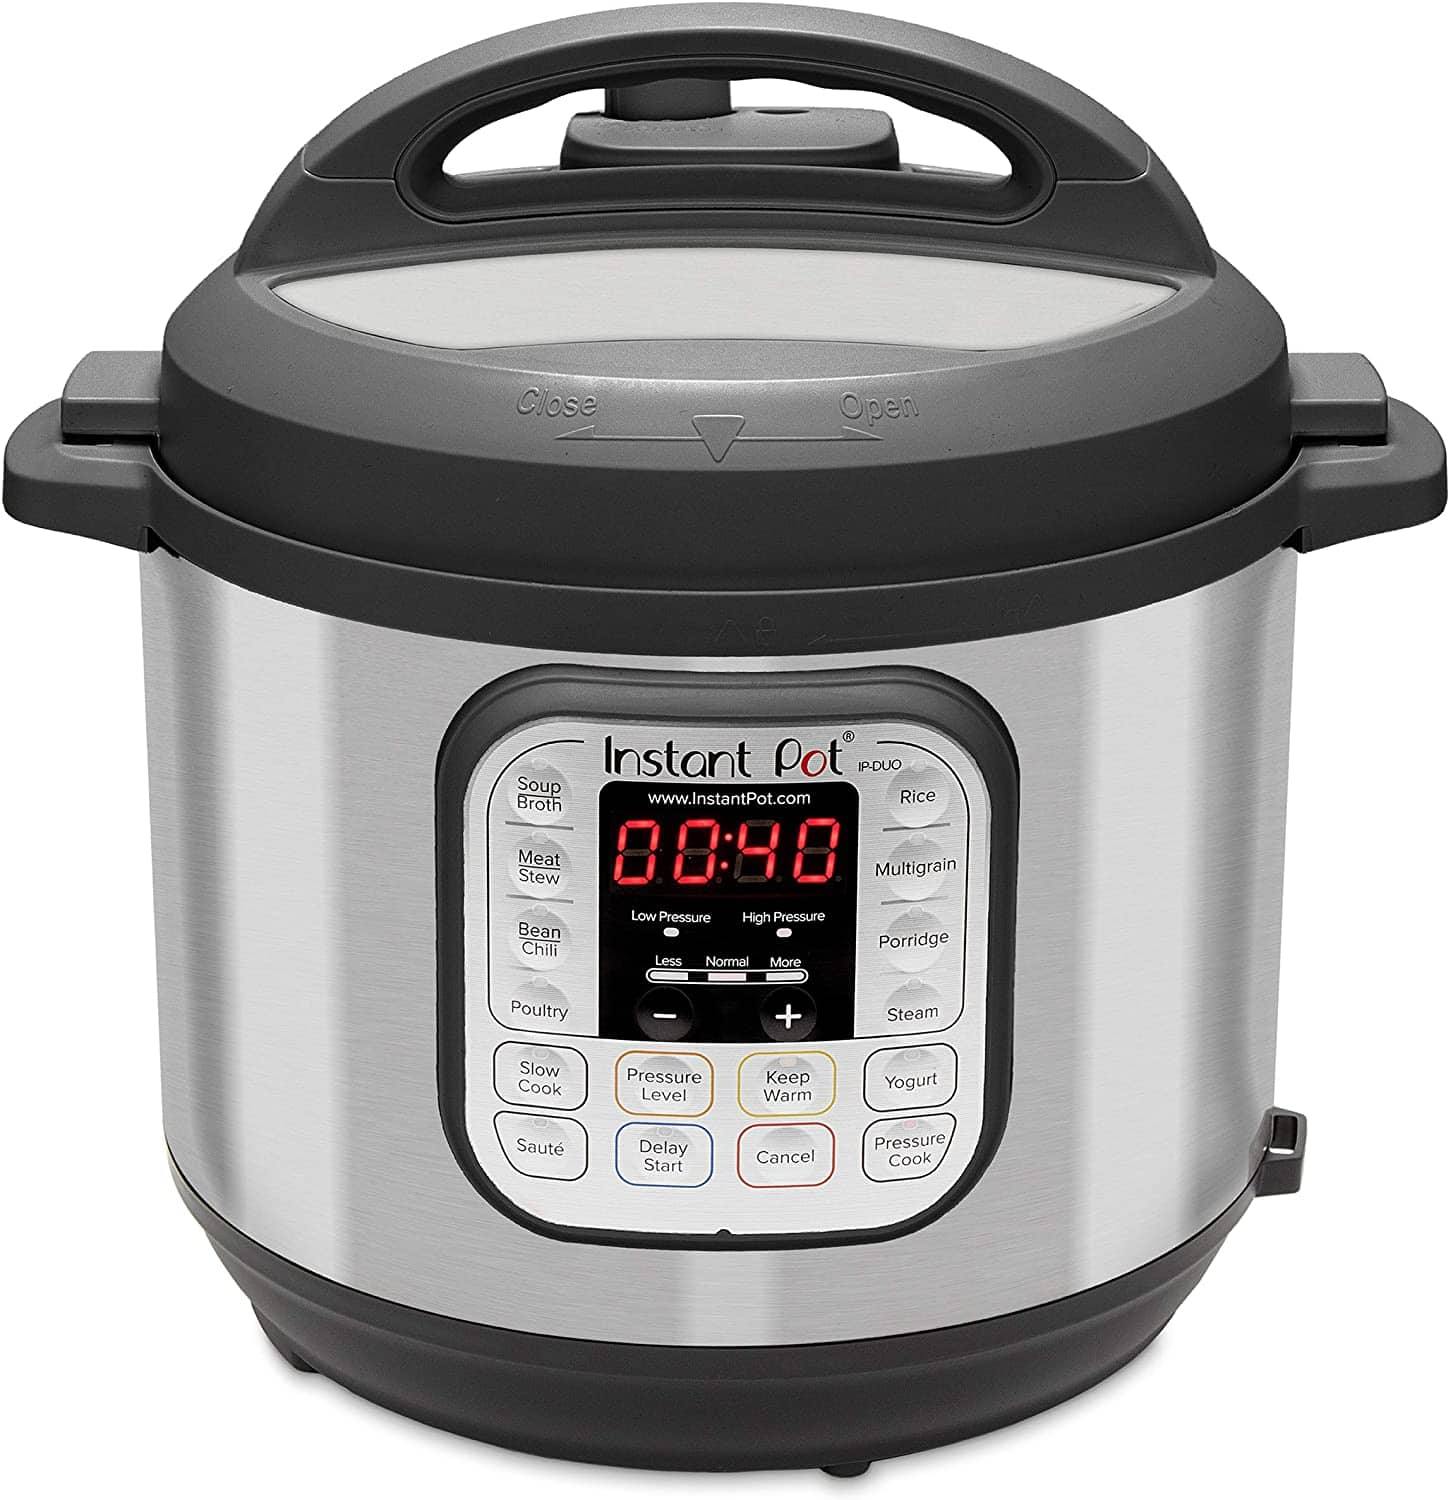 Instant Pot Duo 7-in-1 Electric Pressure Cooker $20 off, NOW $79